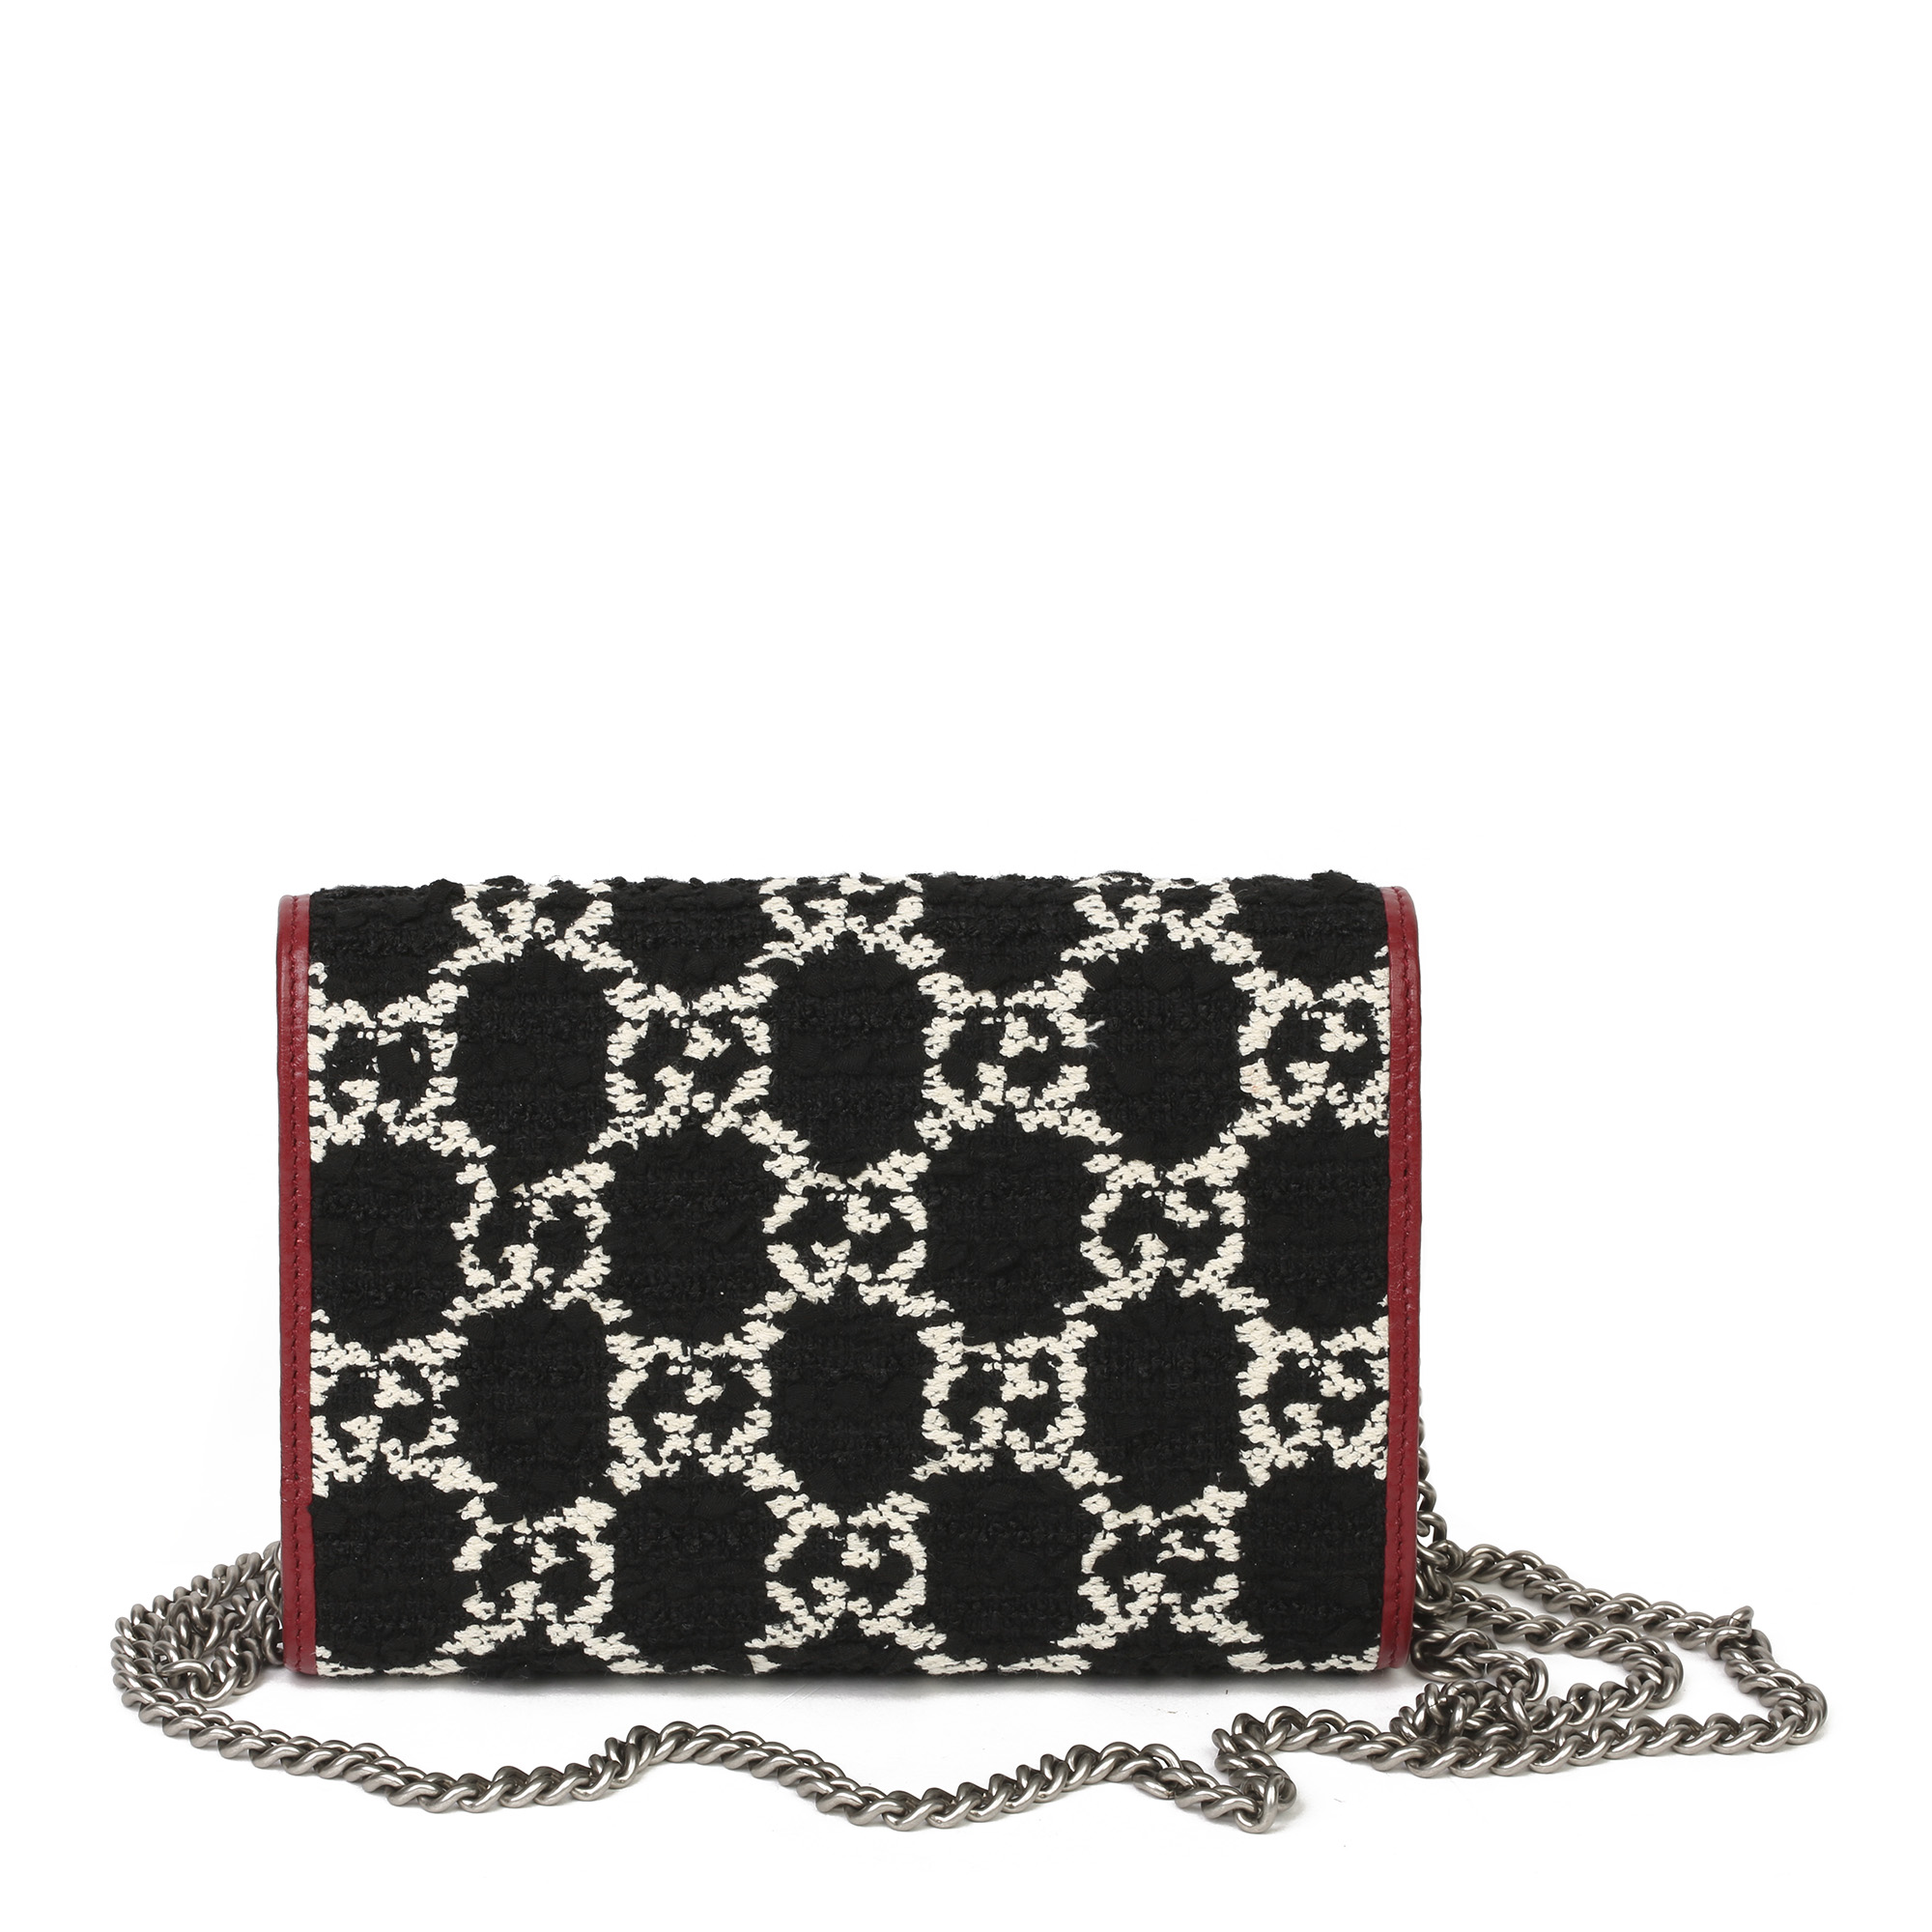 Gucci Red Calfskin & Black, White GG Tweed Dionysus Wallet-on-Chain - Image 9 of 11